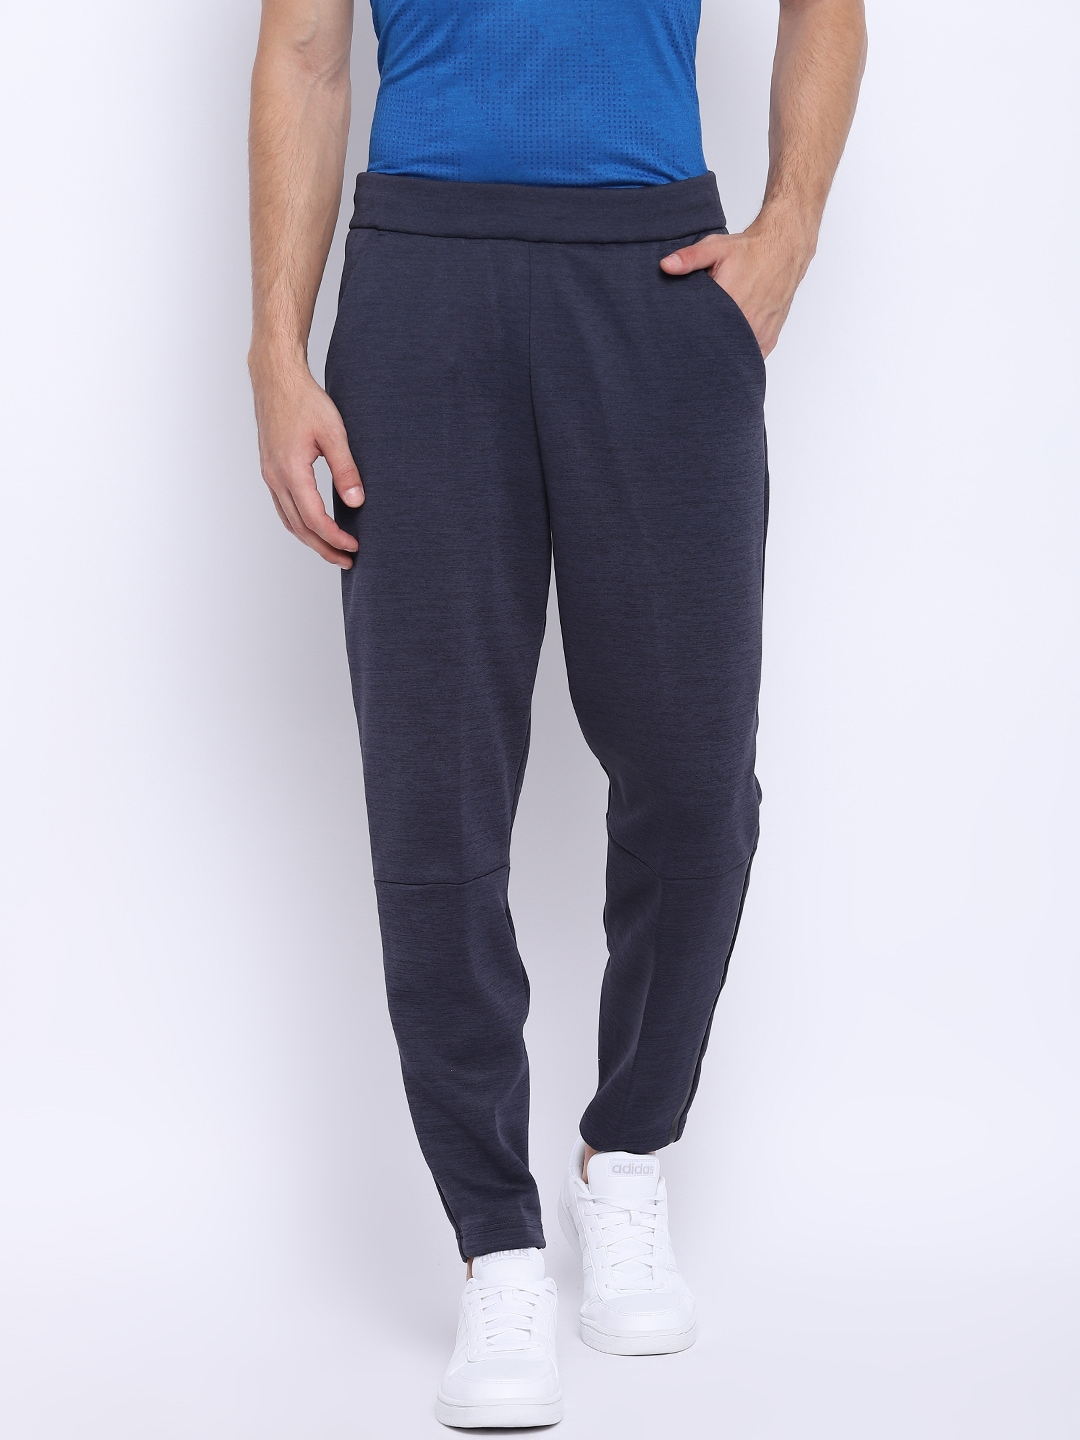 f39d84b1d Myntra deals · Adidas Men Navy Blue Z.N.E. Tapered Solid Track Pants Adidas  Track Pants